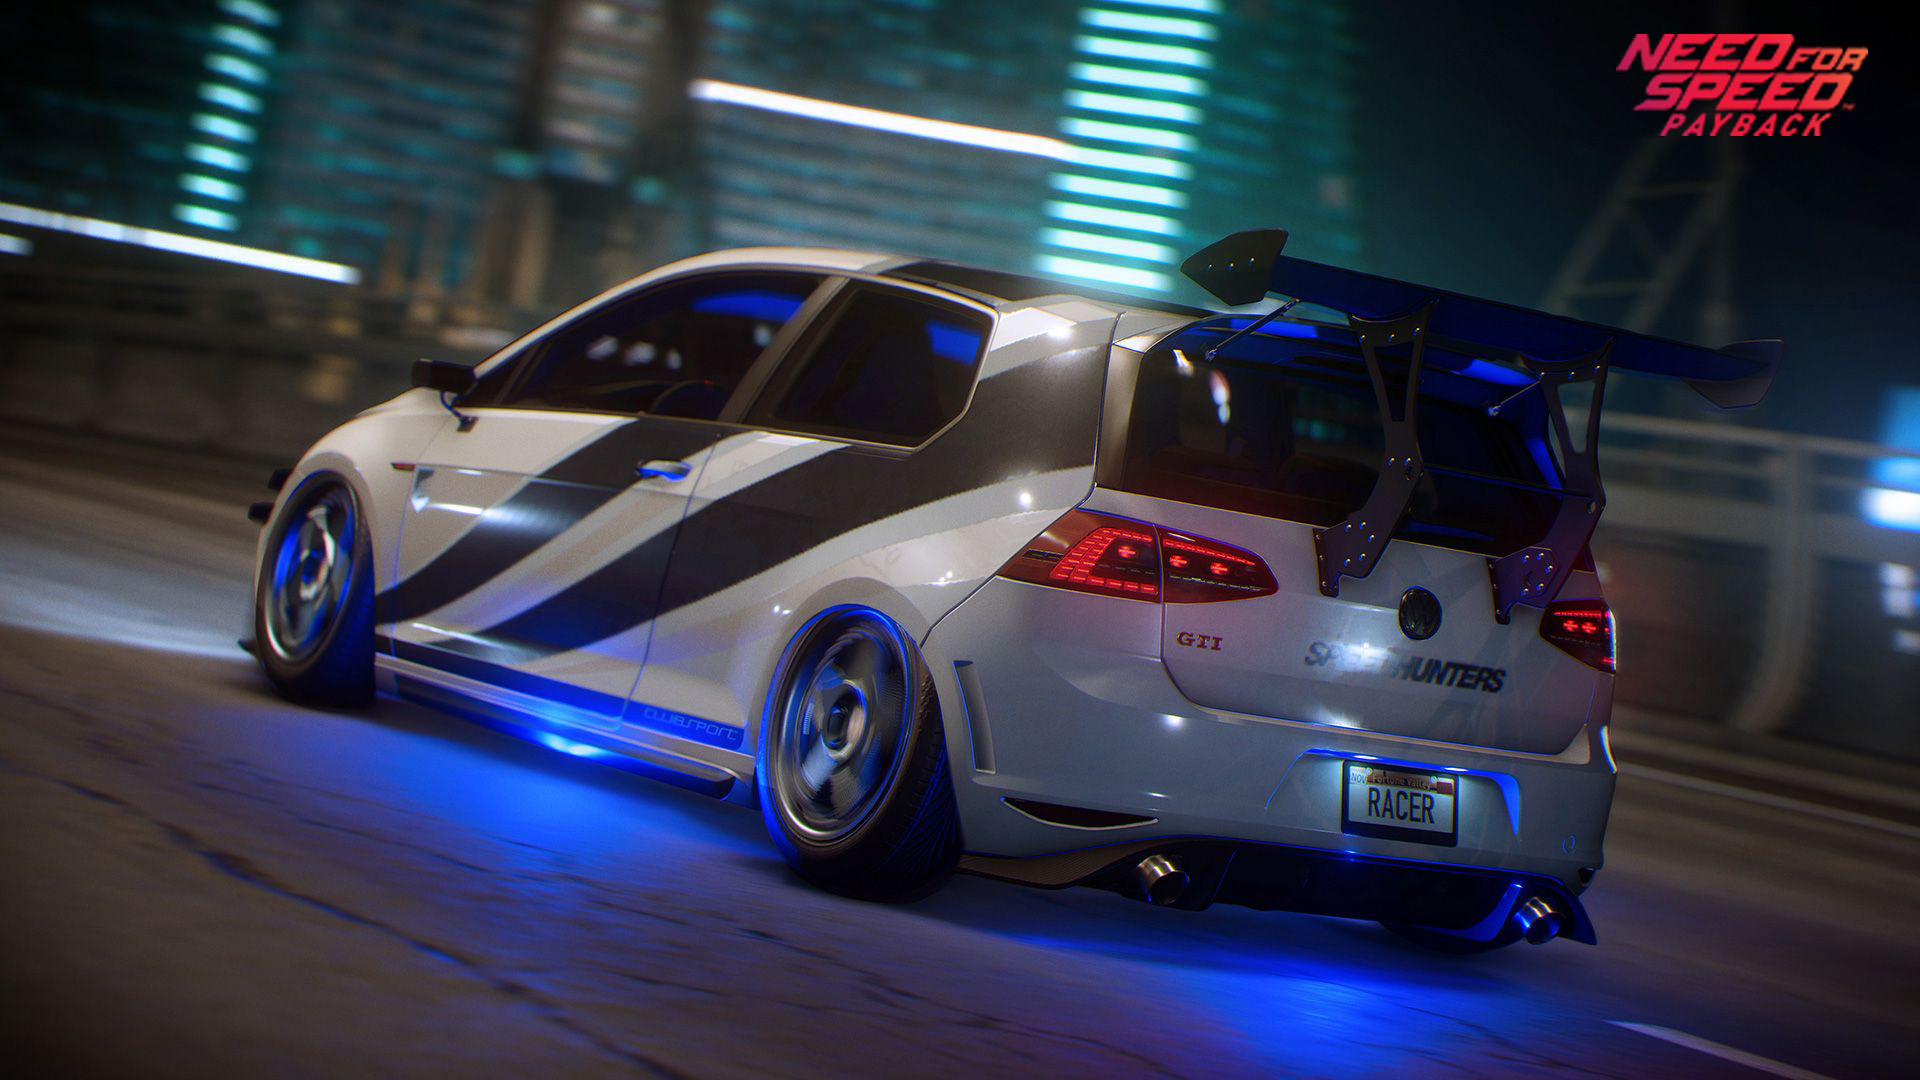 Need For Speed Payback Deluxe And Standard Editions Now Available